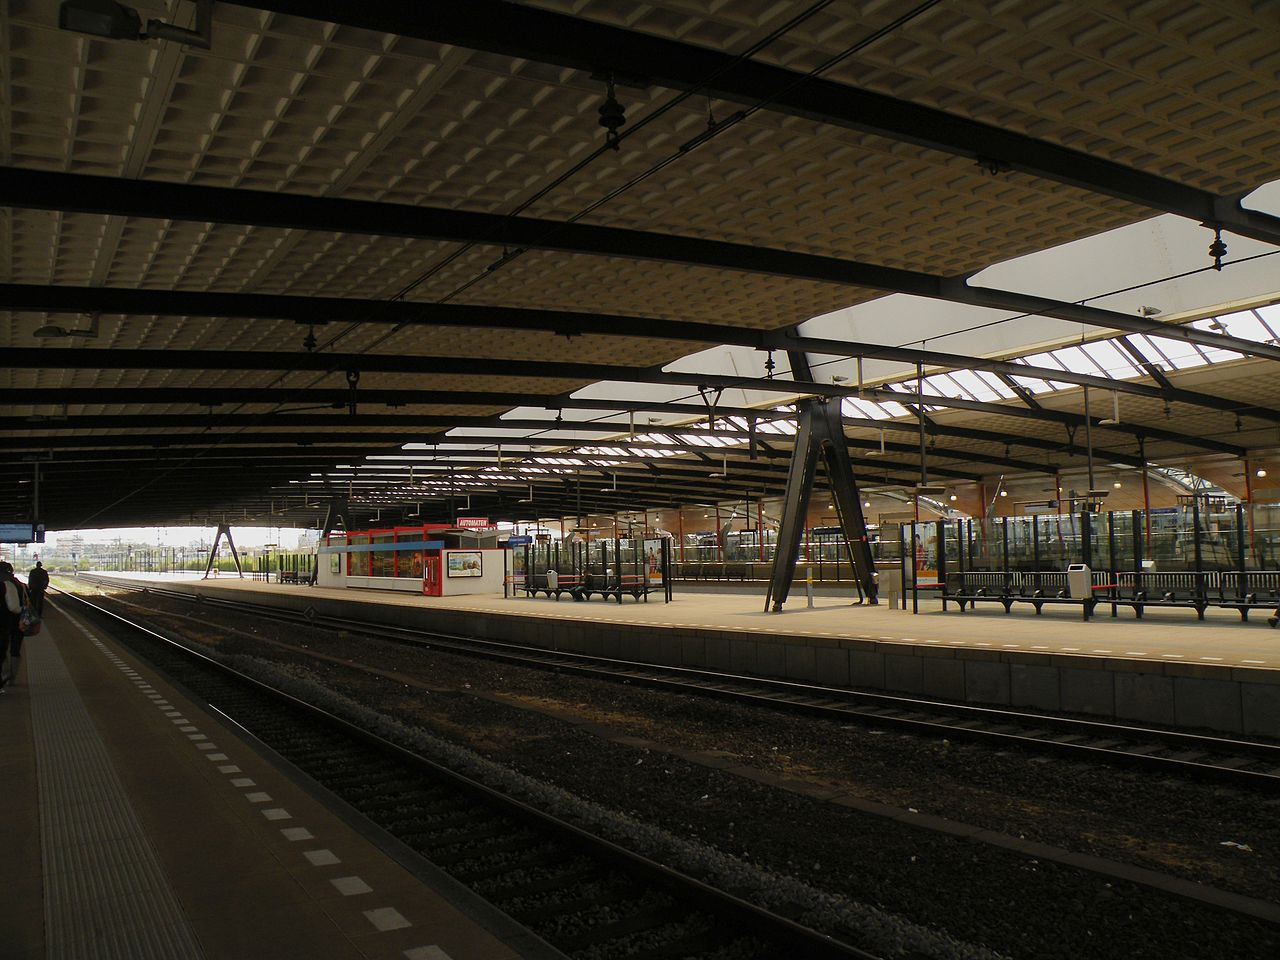 Station Schiedam Centrum